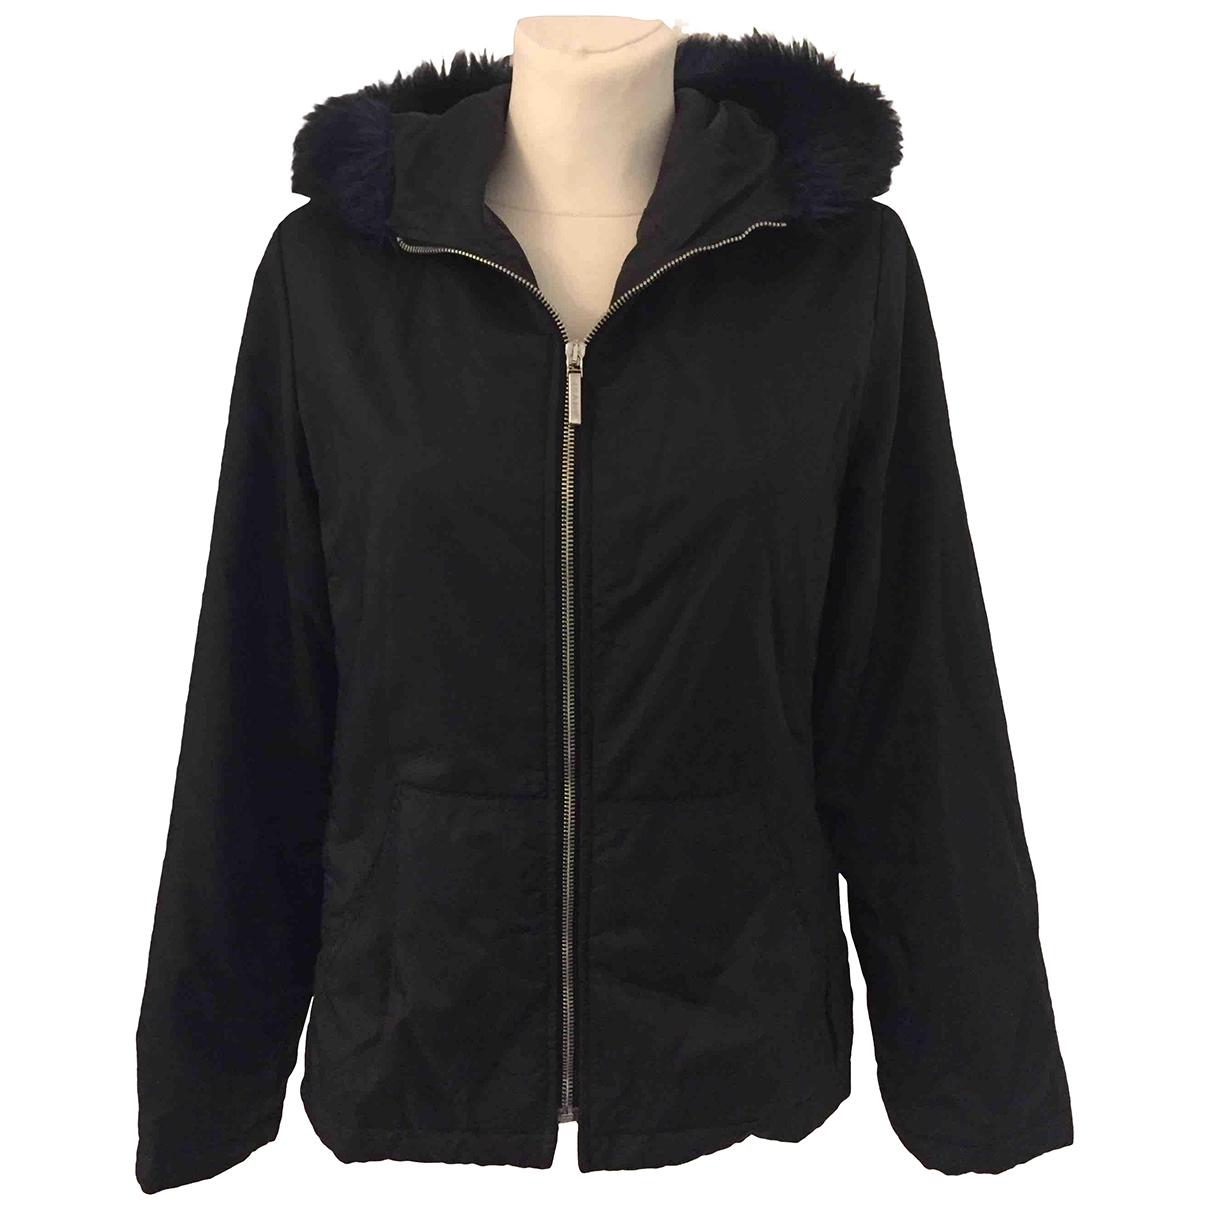 Moschino Love \N Black jacket for Women 44 IT